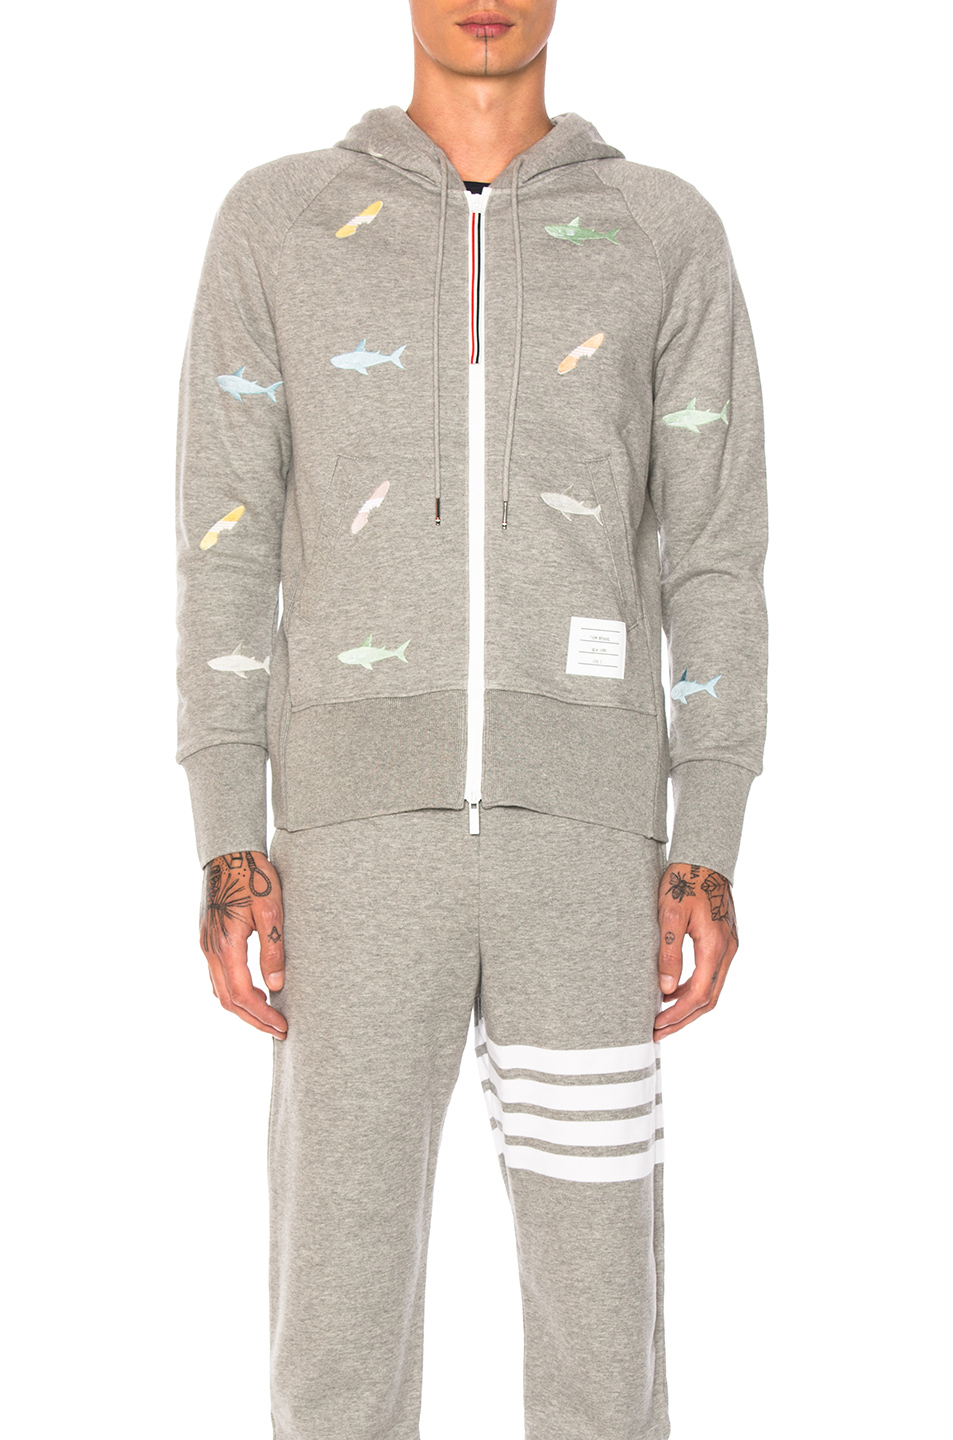 Thom Browne Shark & Surfboard Embroidery Zip Hoodie in Gray